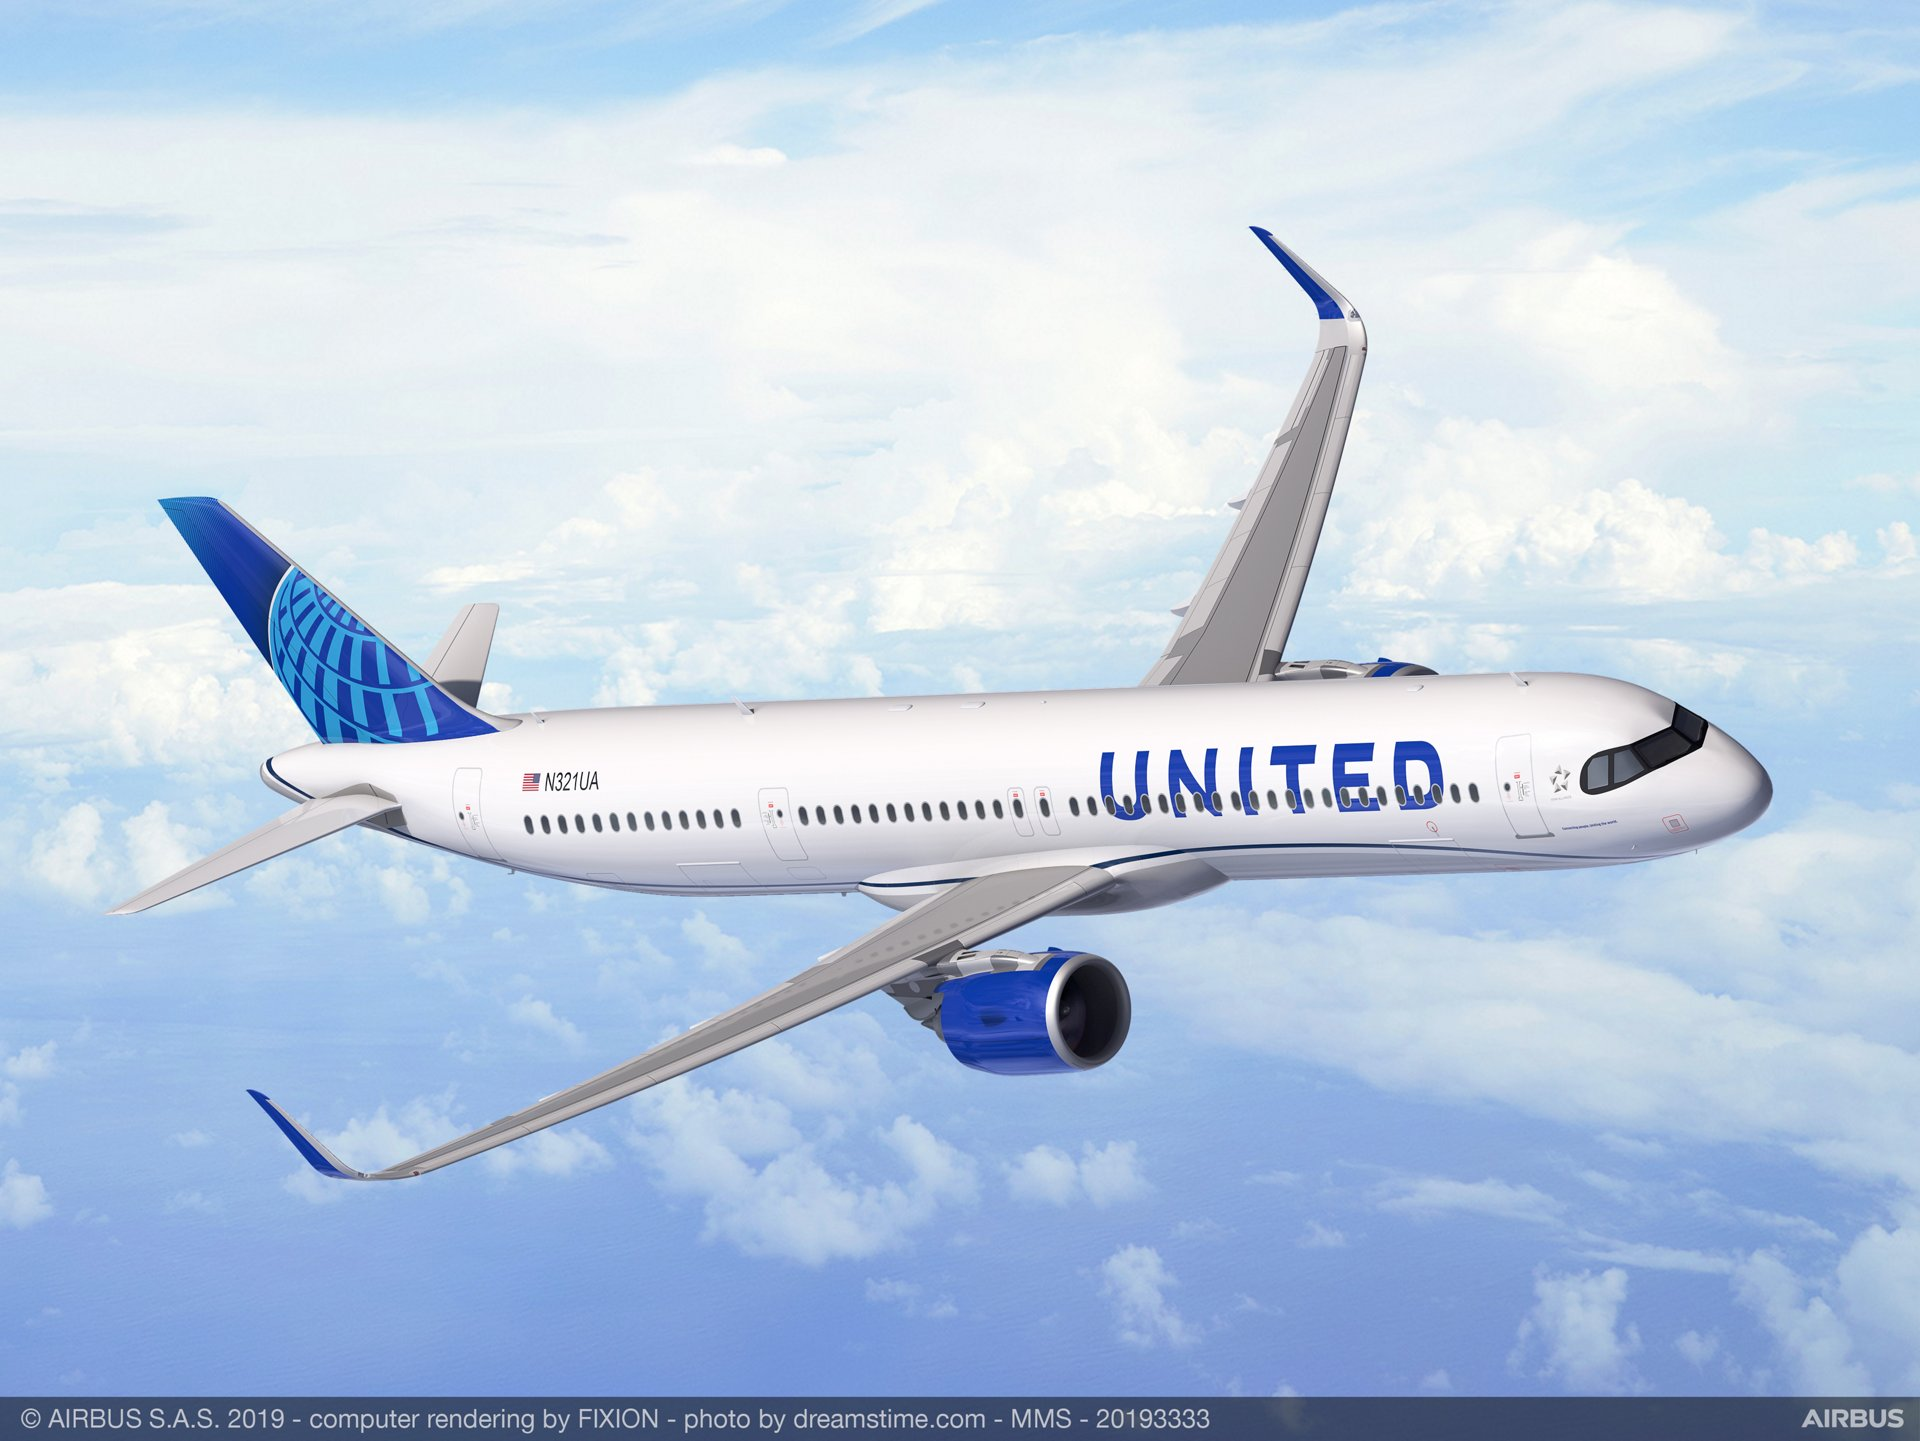 United Airlines plans to take delivery of the first A321XLR in 2024 and expects to begin international service with the aircraft in 2025